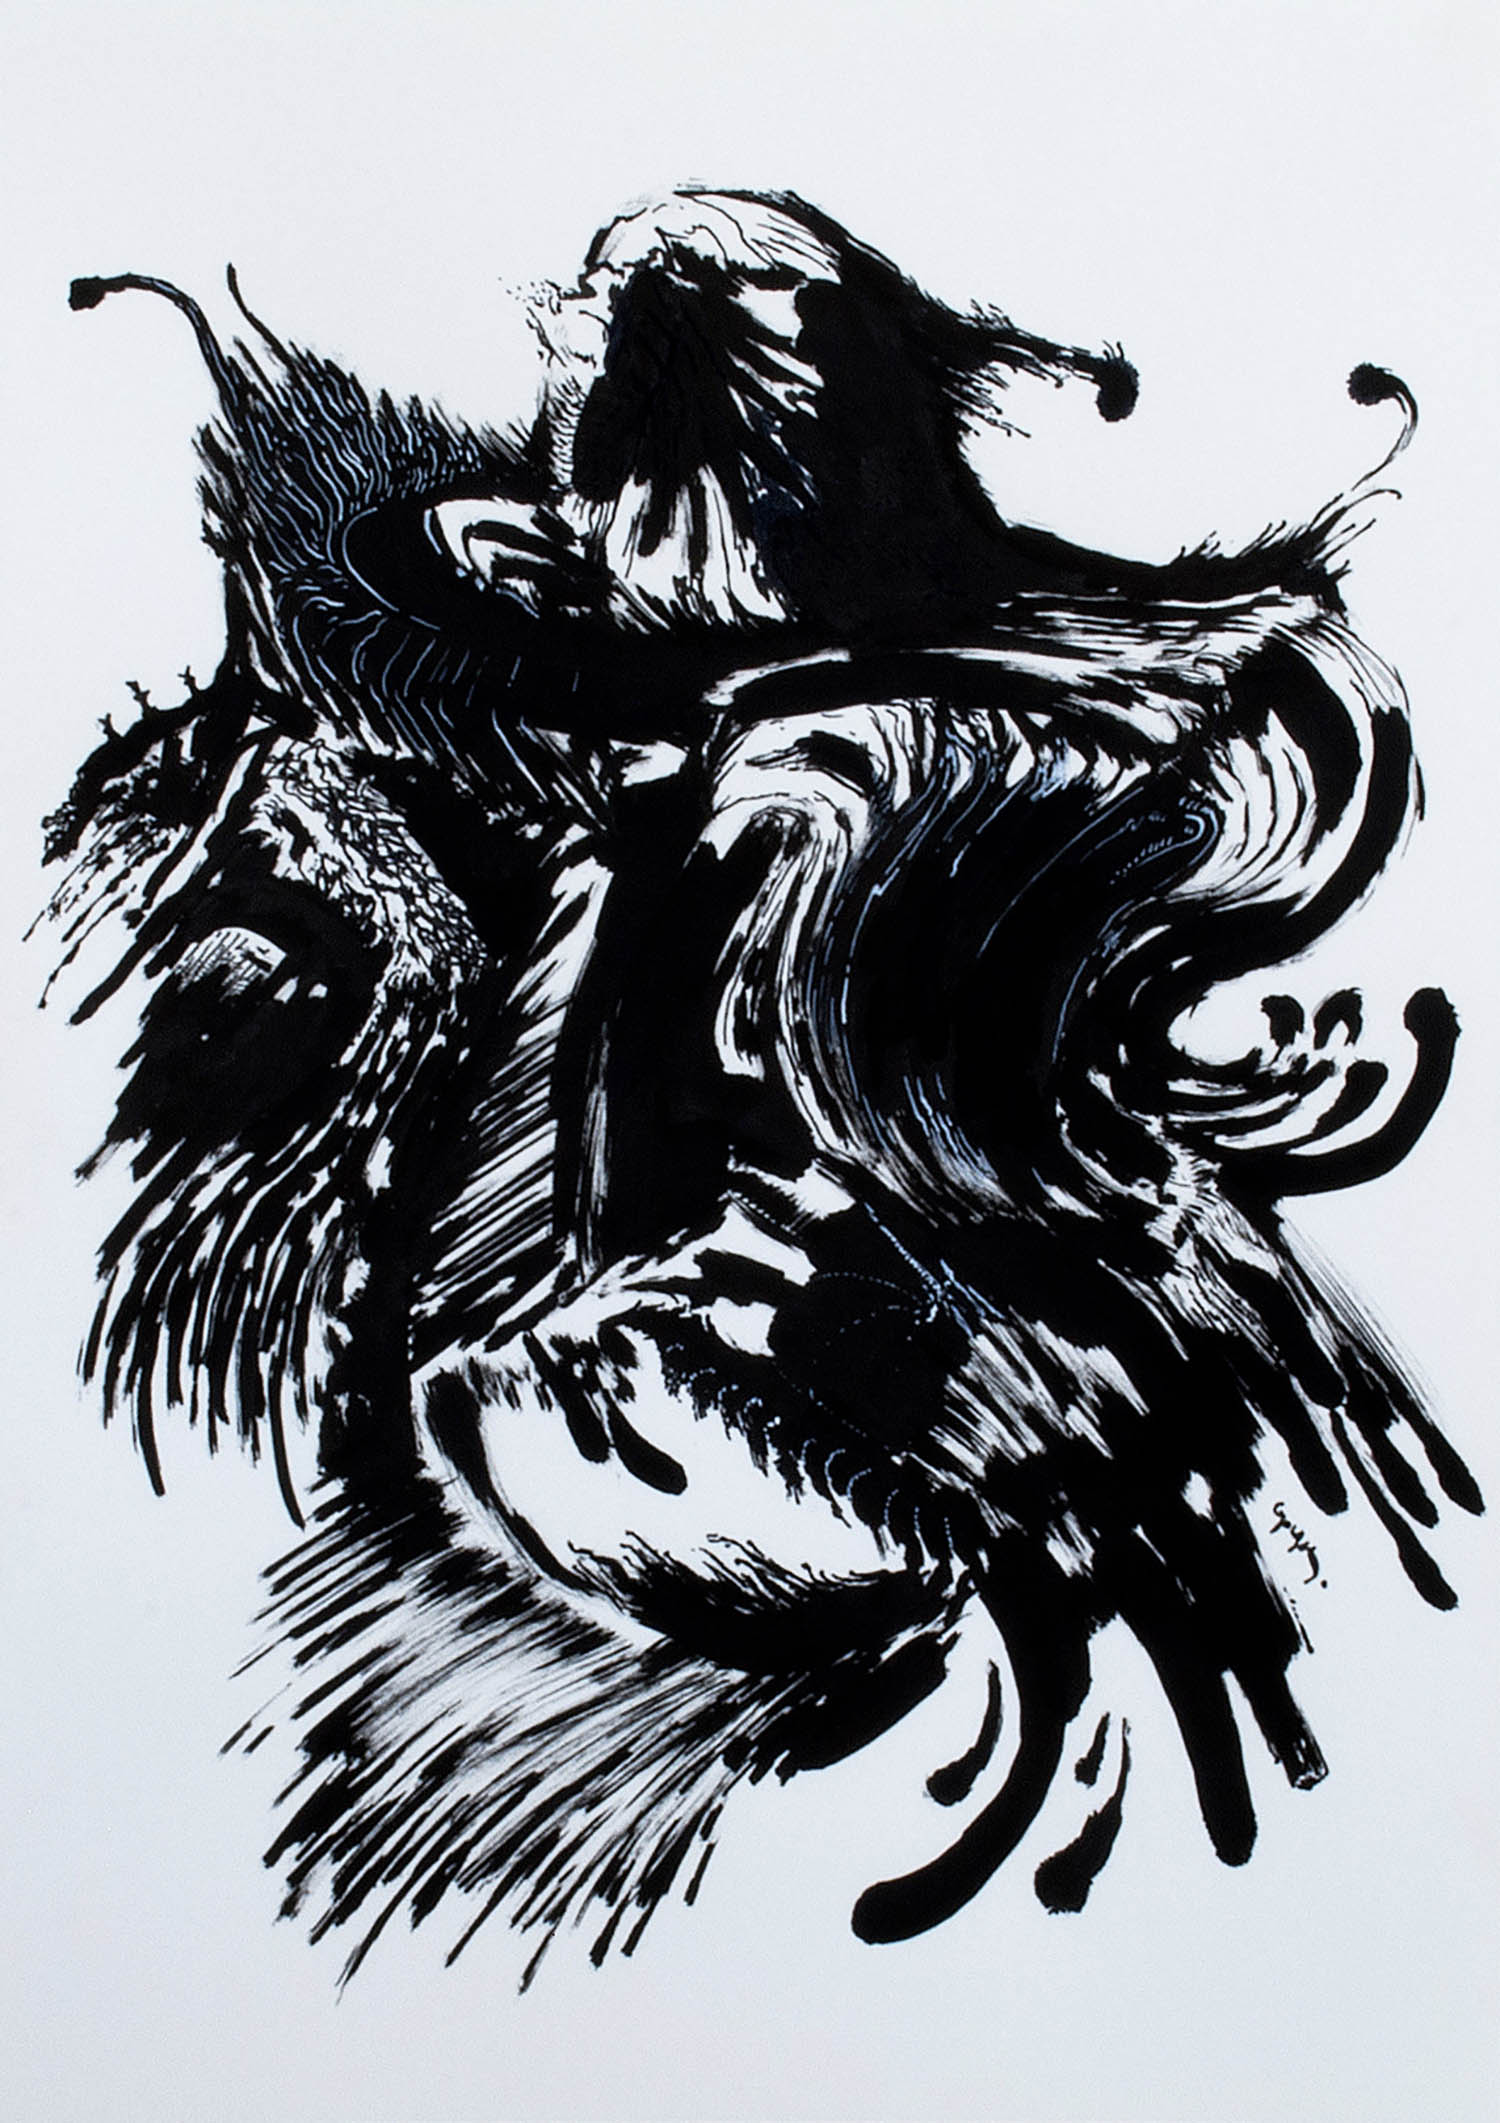 'Black Rooster', abstract monochrome black & white constrast animal painting by Greek multidisciplinary artist Kostas Gogas.